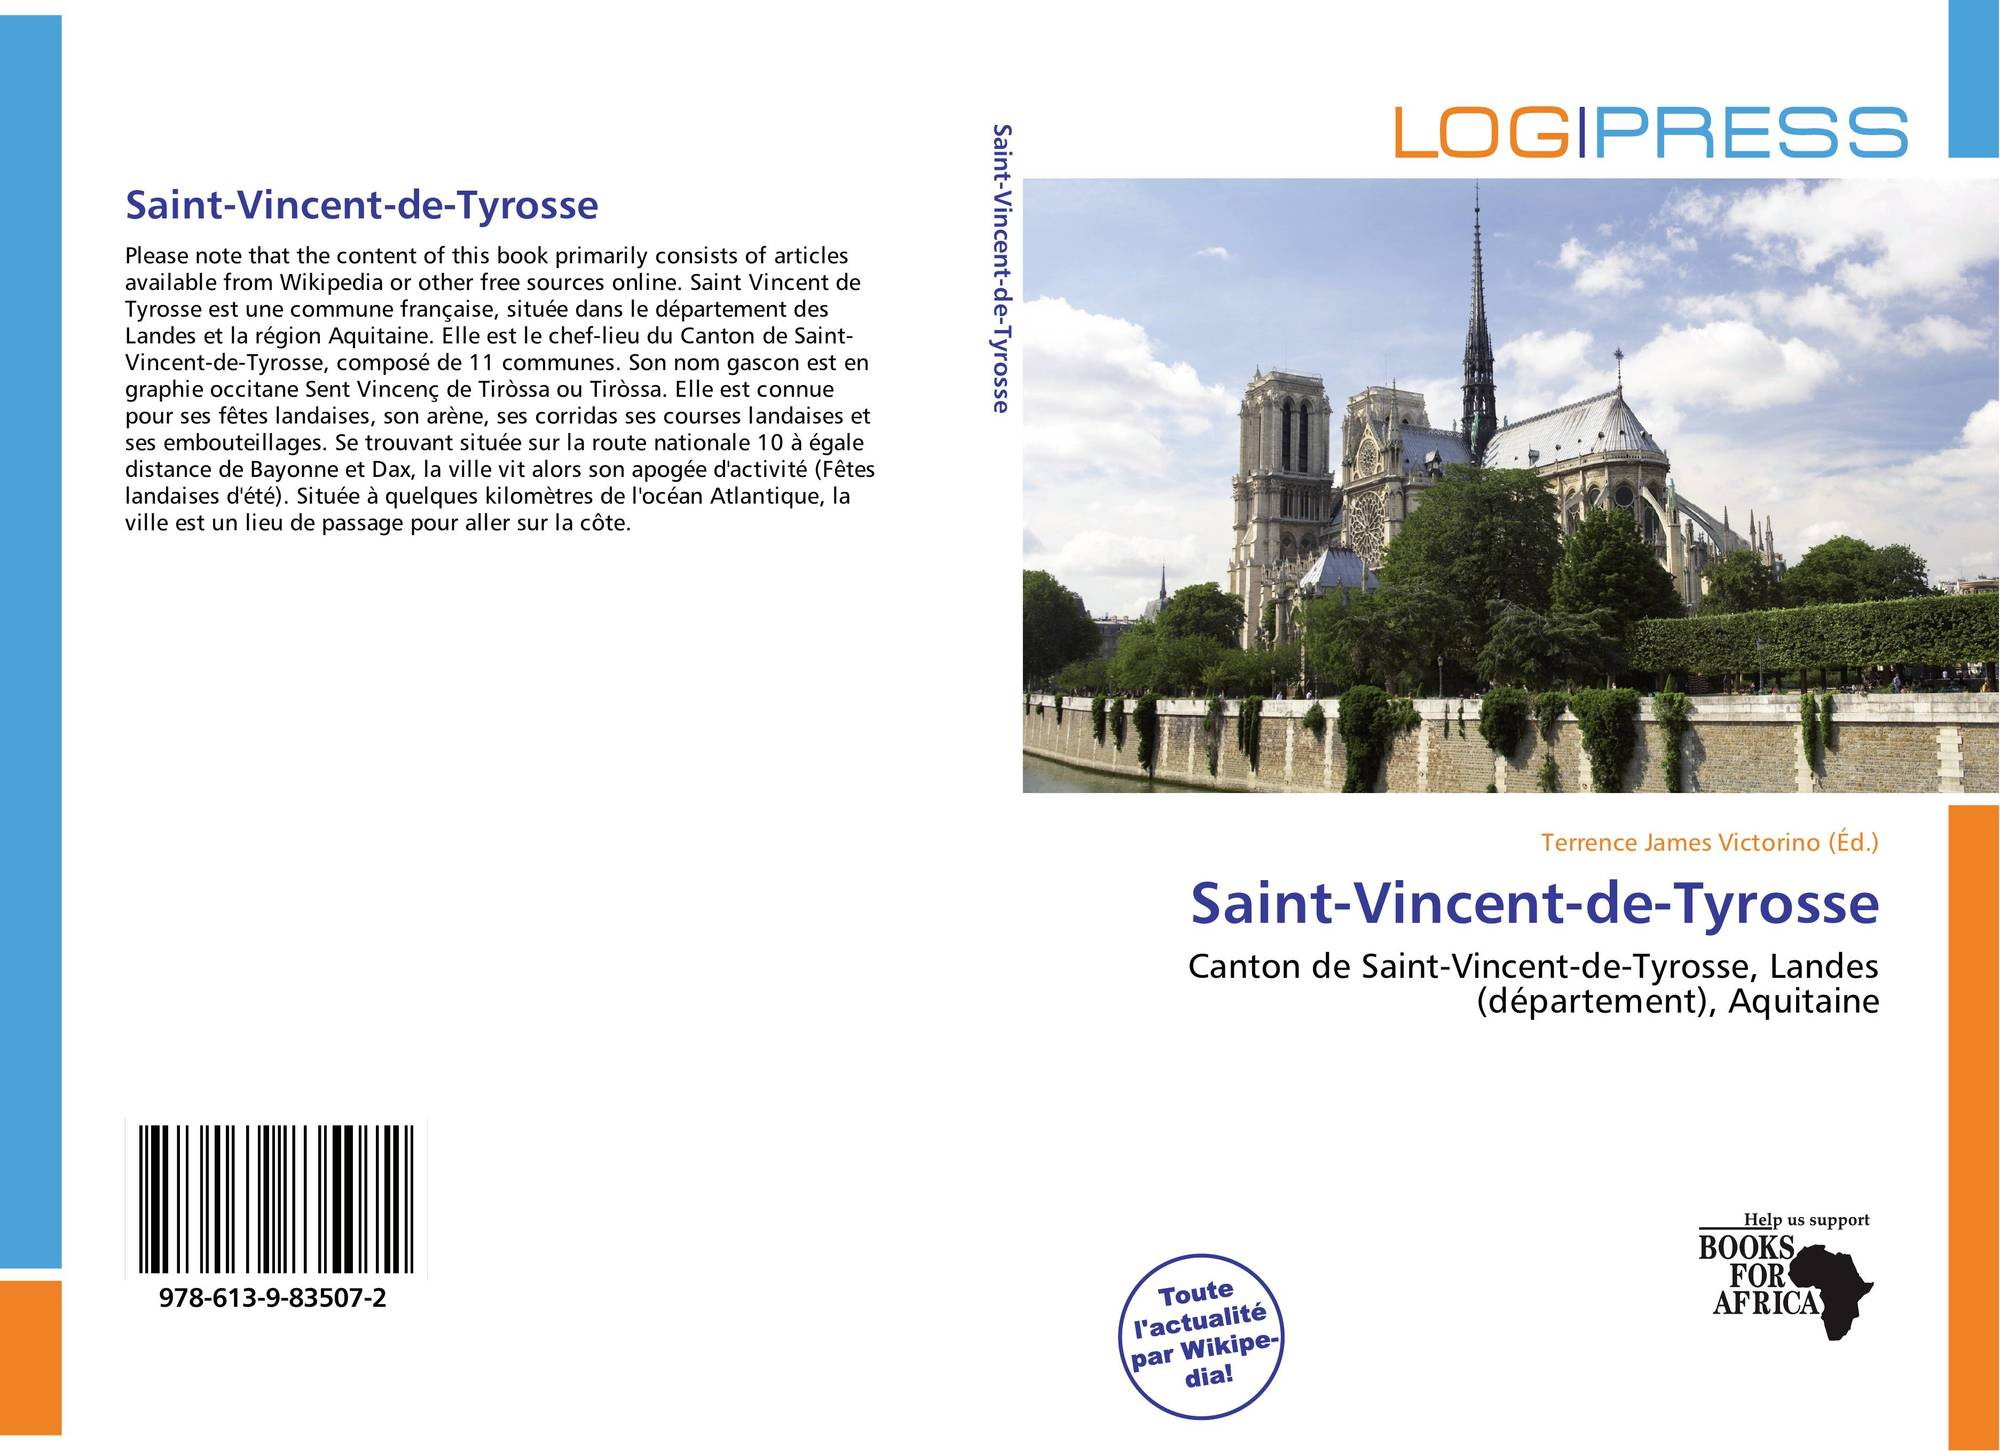 Saint vincent de tyrosse 978 613 9 83507 2 6139835070 for Papeterie saint vincent de tyrosse